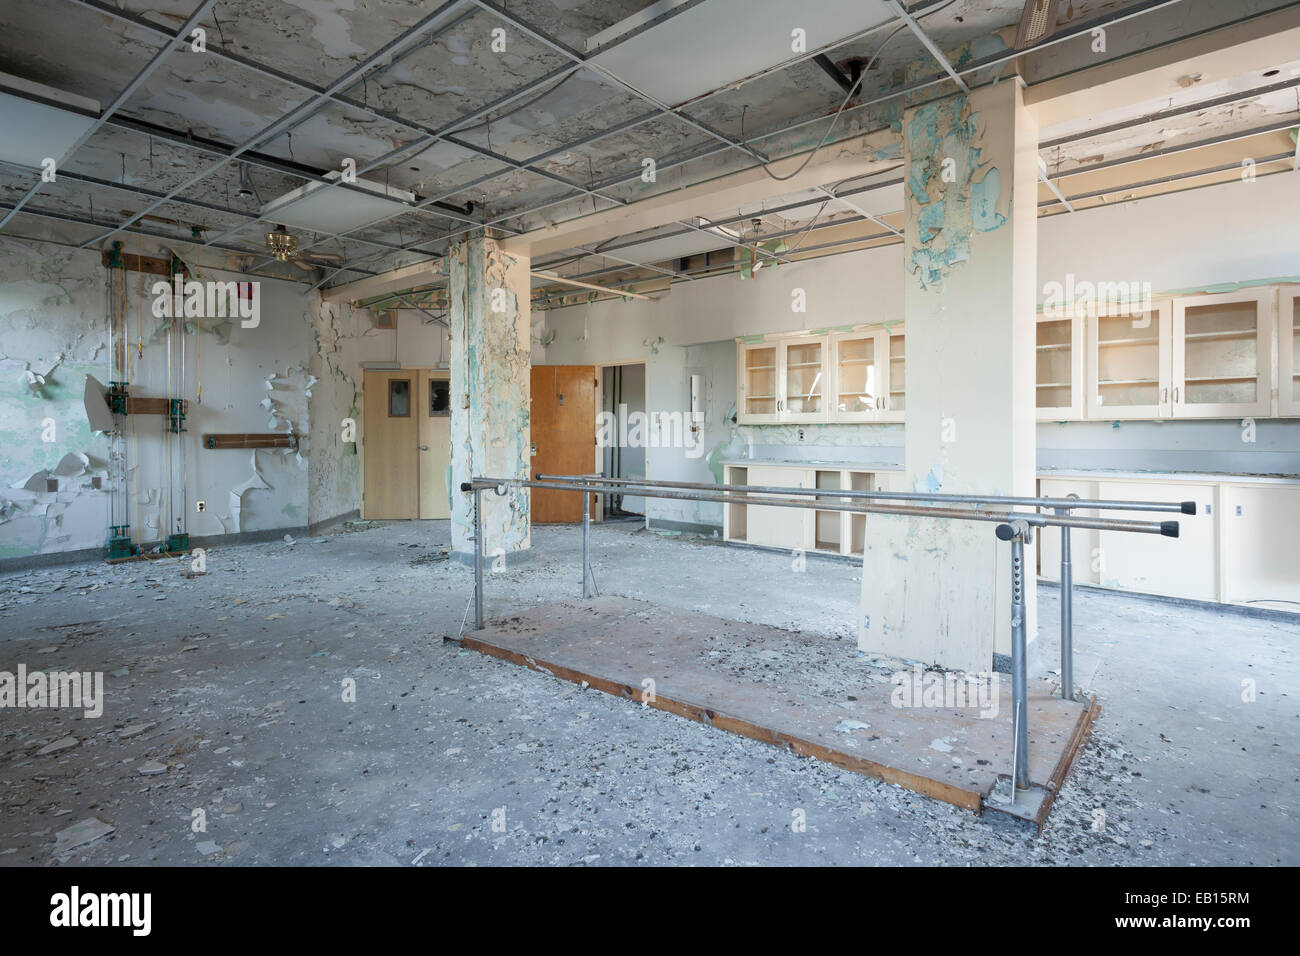 Parallel bars and chest pulley weight system in the Physical Therapy room of an abandoned hospital. Ontario, Canada. - Stock Image